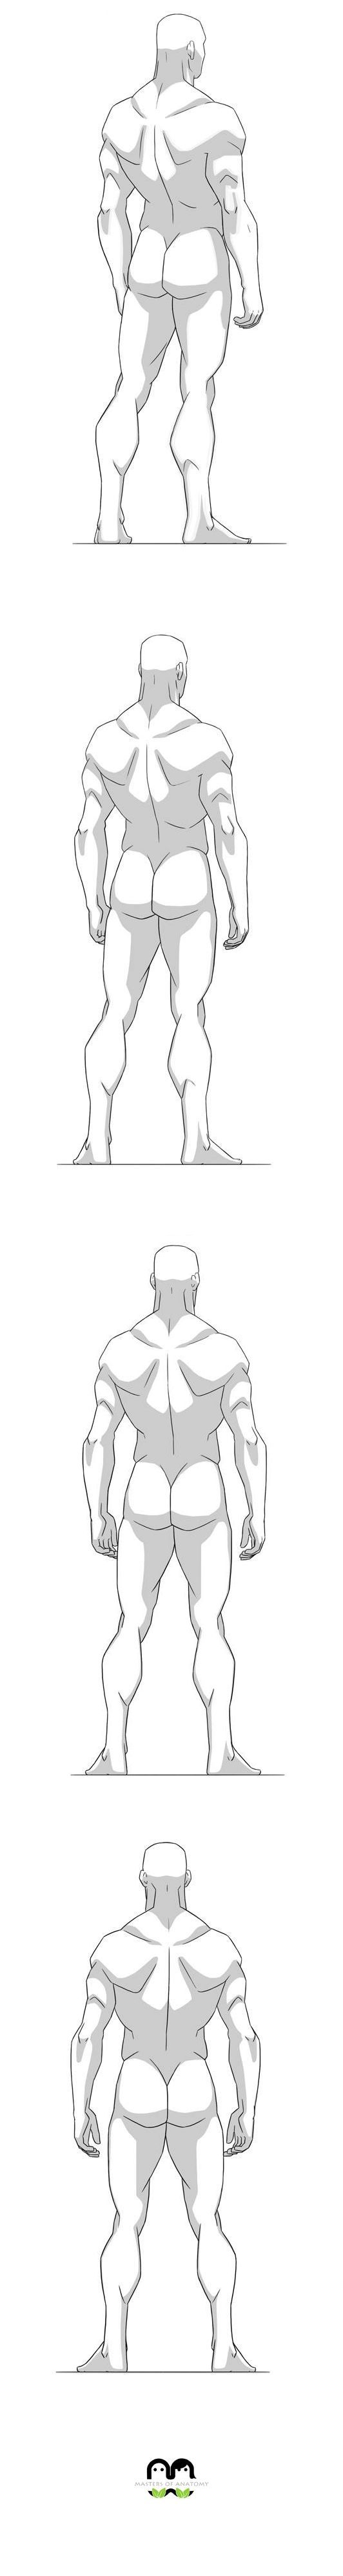 382 best Anatomy Tutorials and References images on Pinterest ...